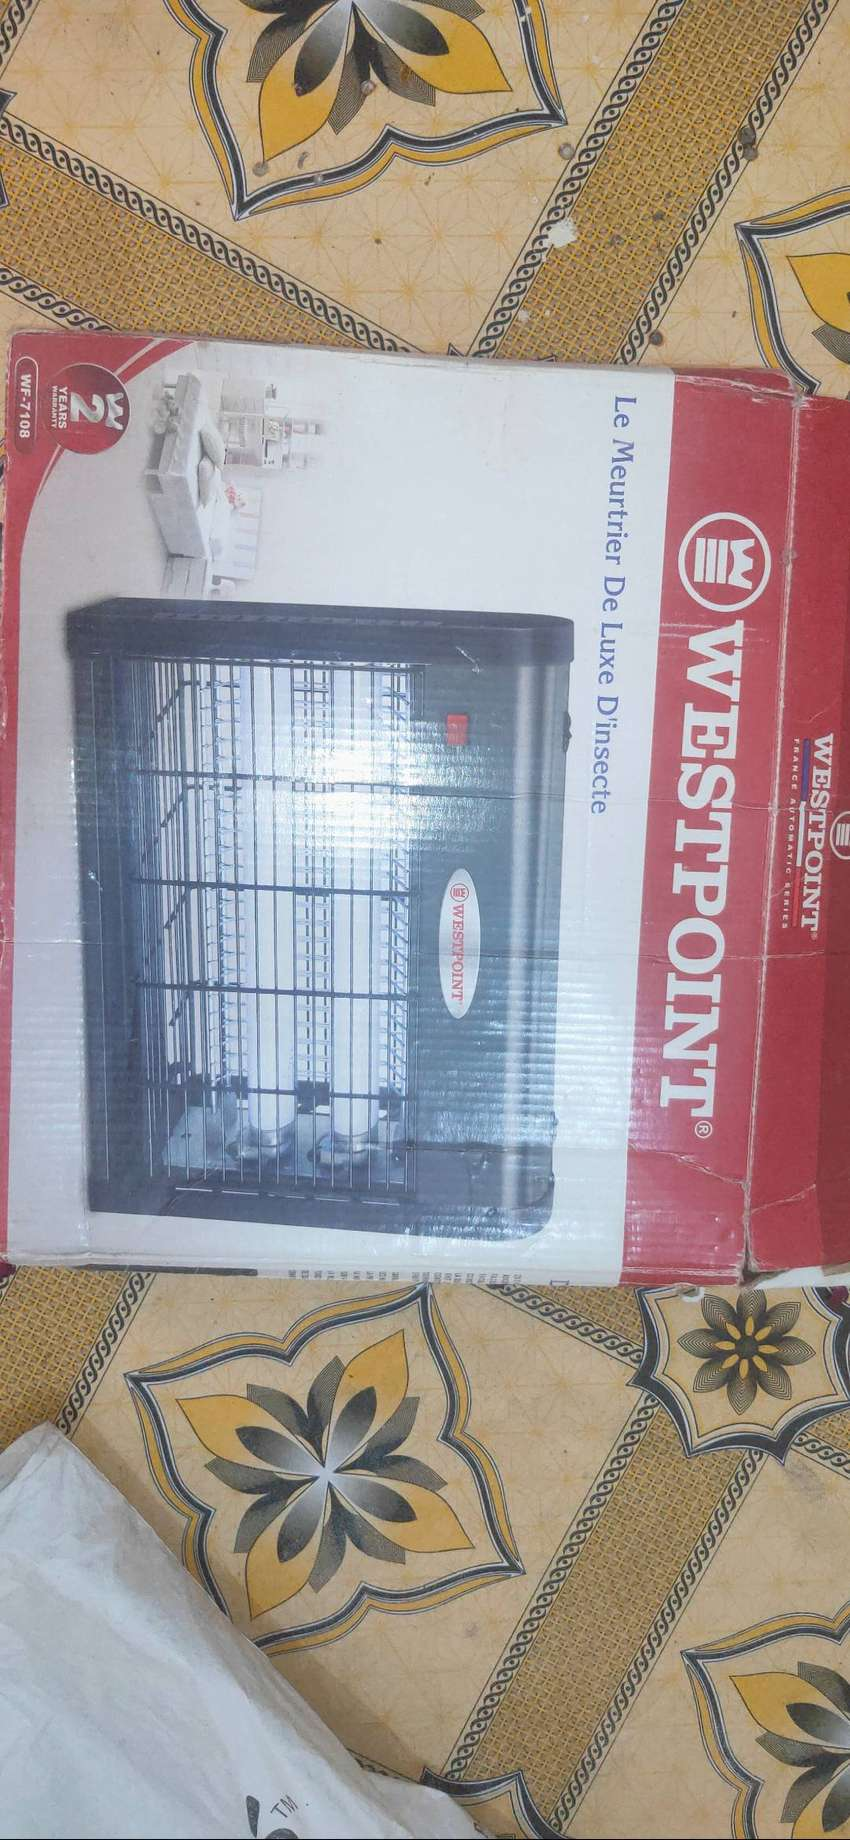 Westpoint insect killer 2 day use 0